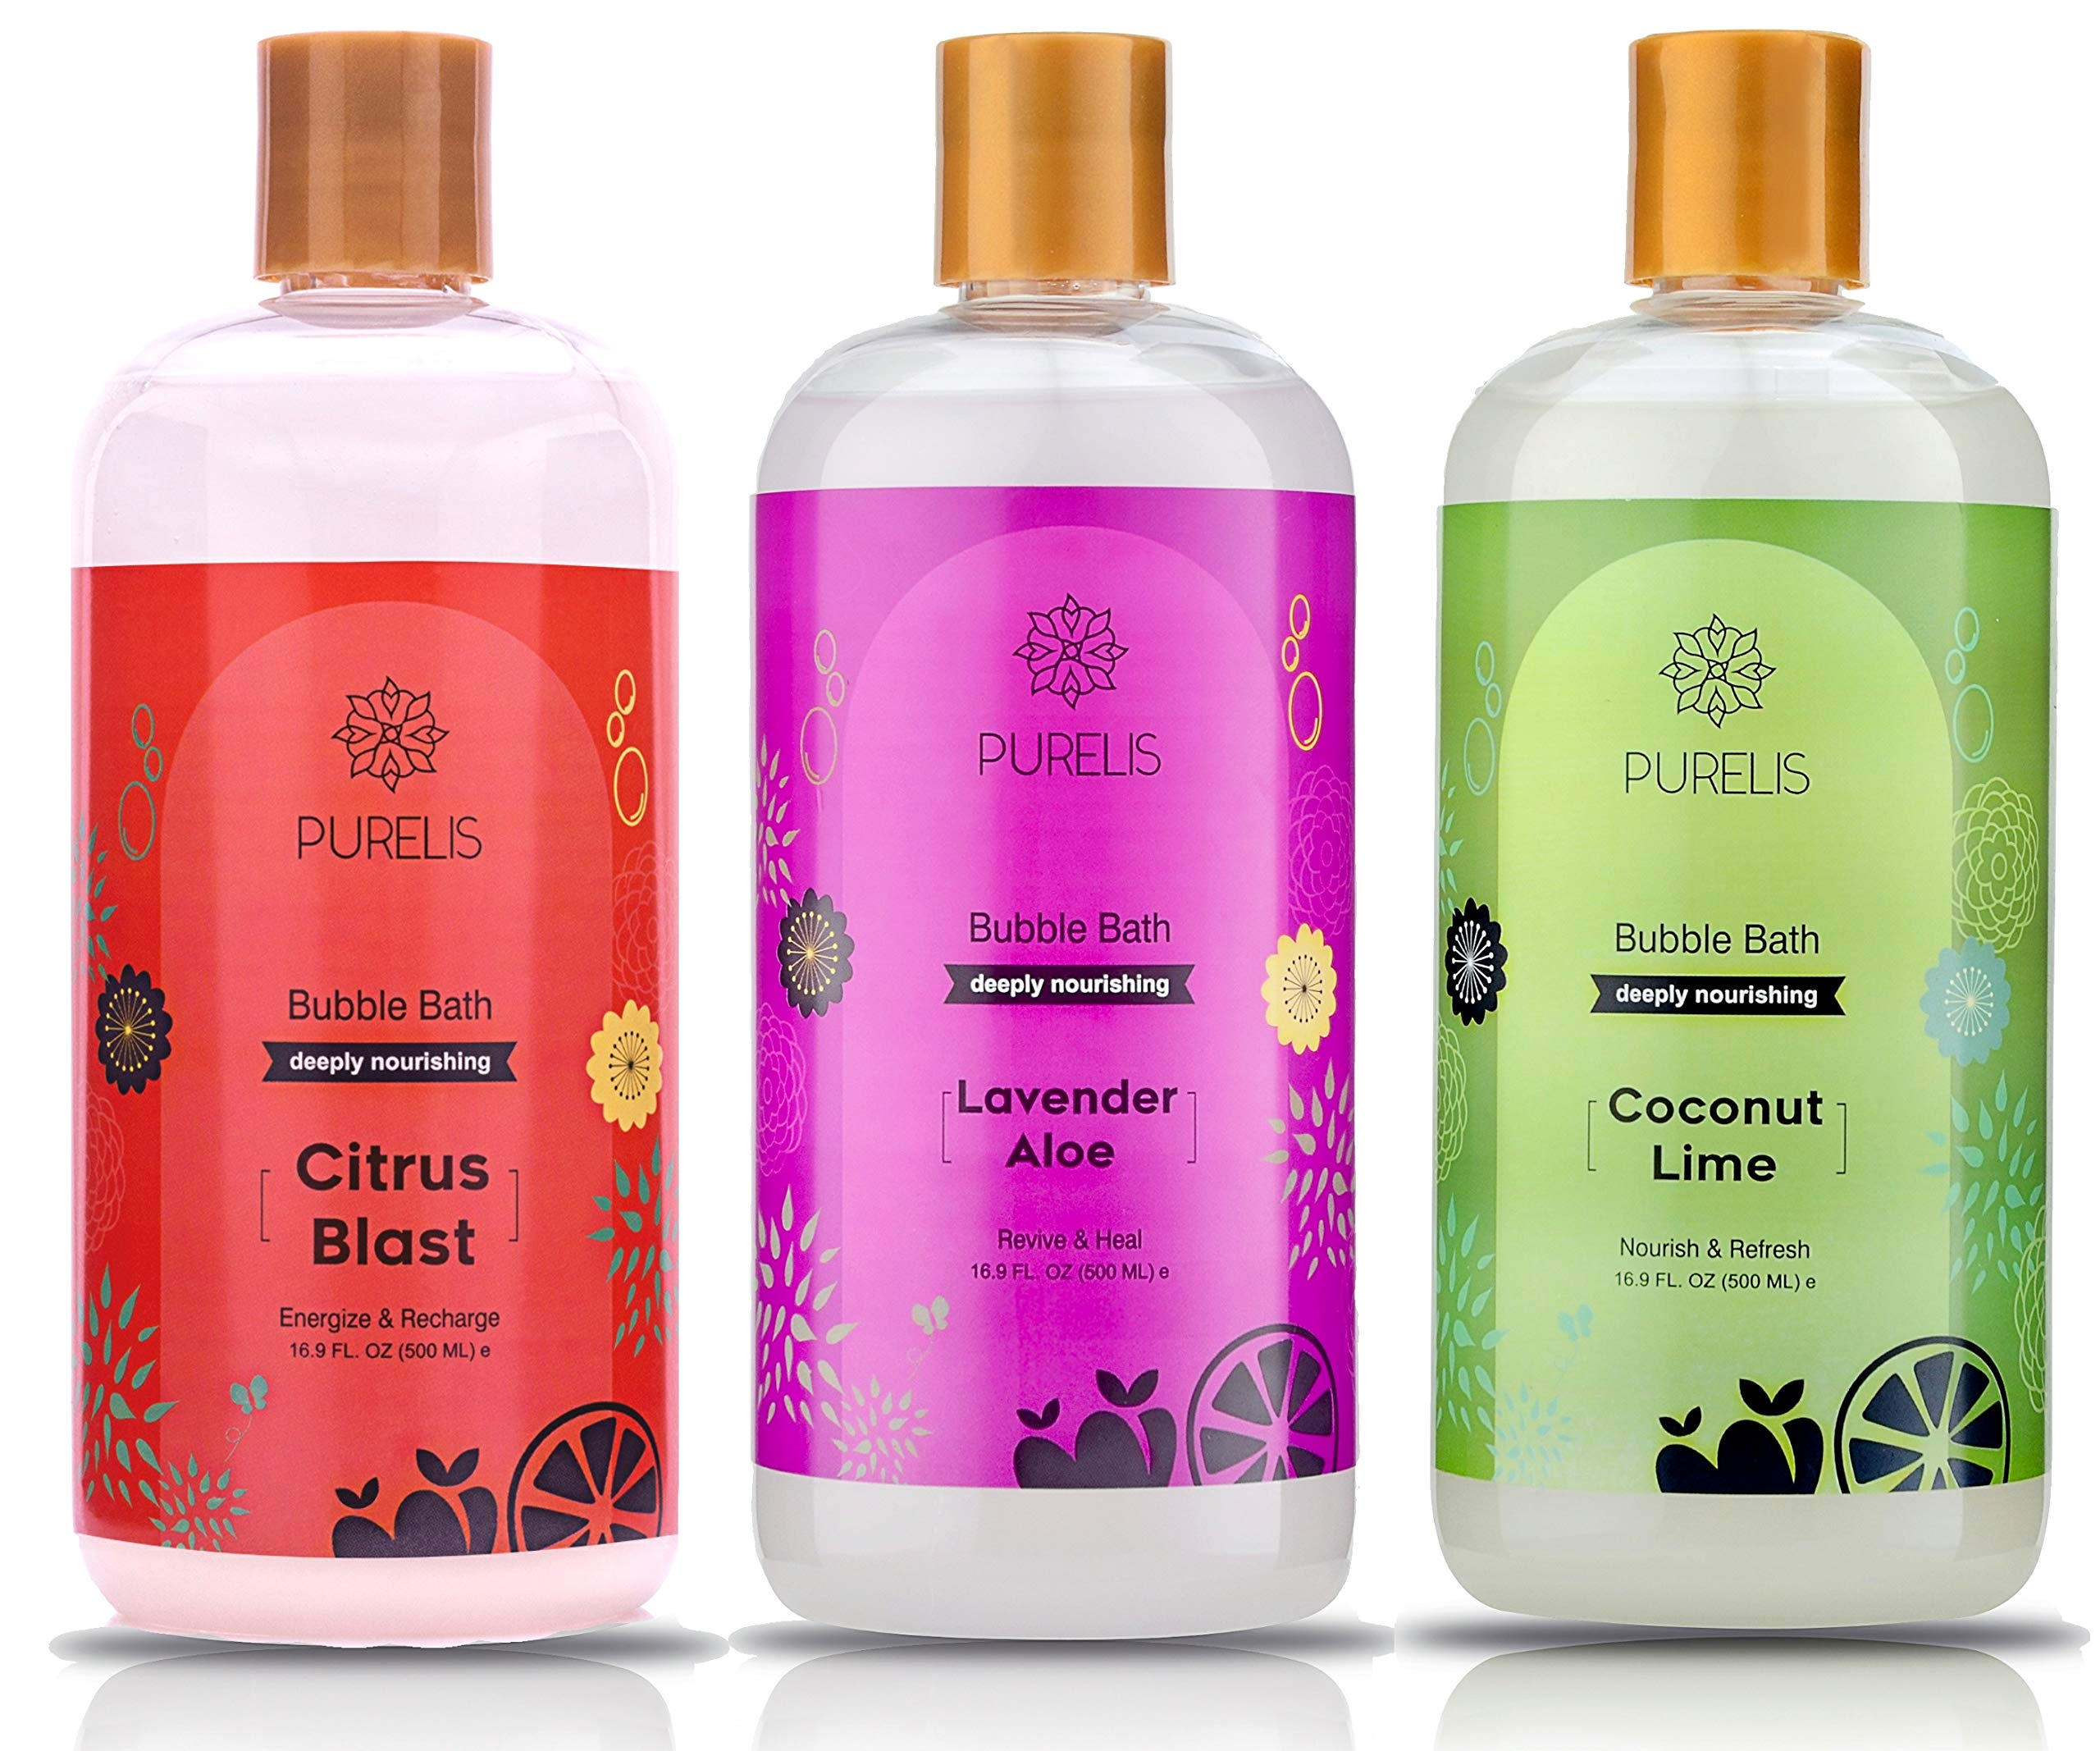 Kids Bubble Bath Tear Free 3 Pack Lavender, Citrus + Coconut & Lime - Hypoallergenic Bubble Baths for Women & Kids to Soothe & Relax. Sulfate Free Bubble Bath for sensetive skin! by Purelis